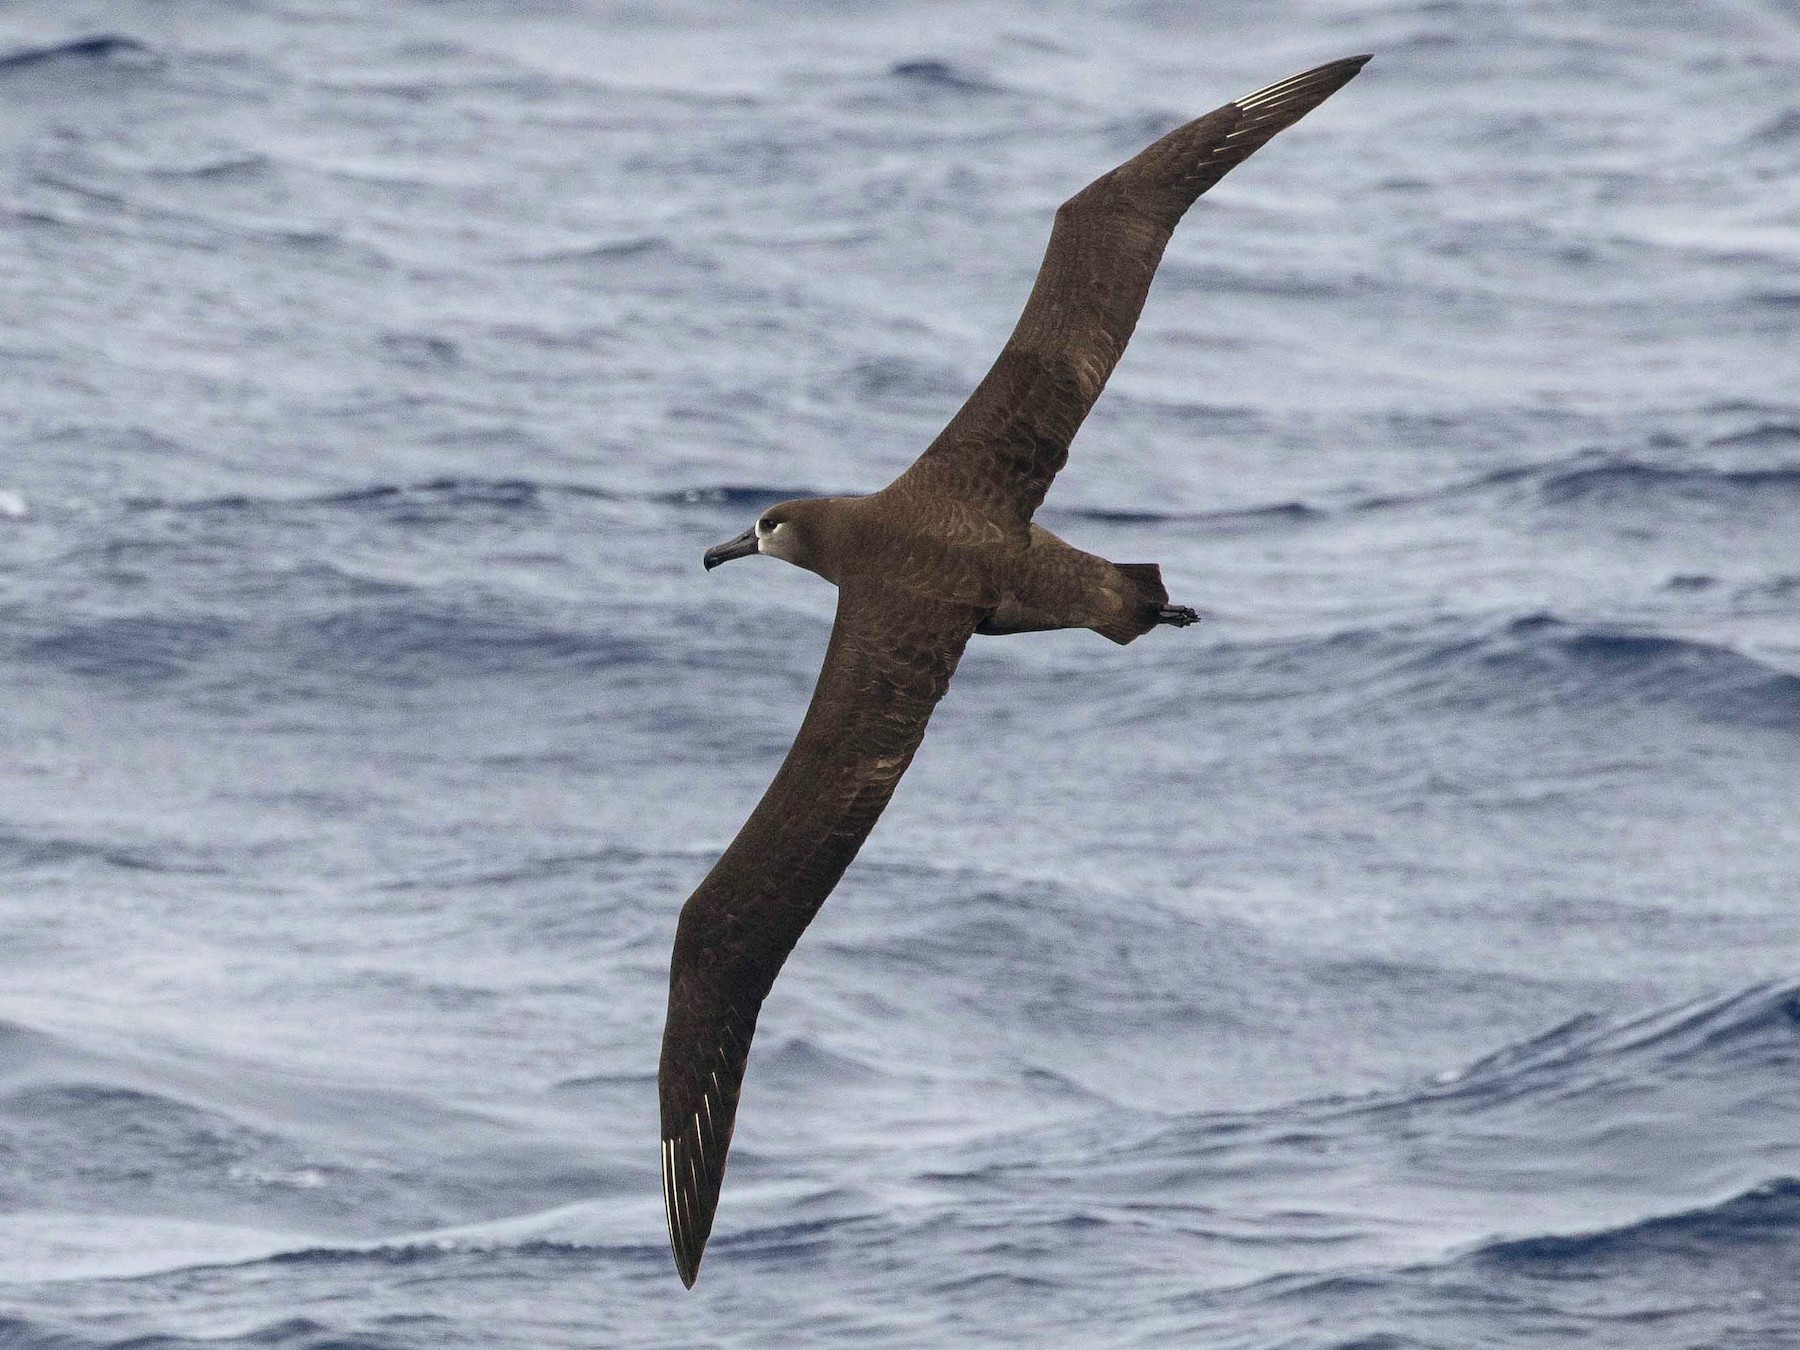 Black-footed Albatross - Eric VanderWerf